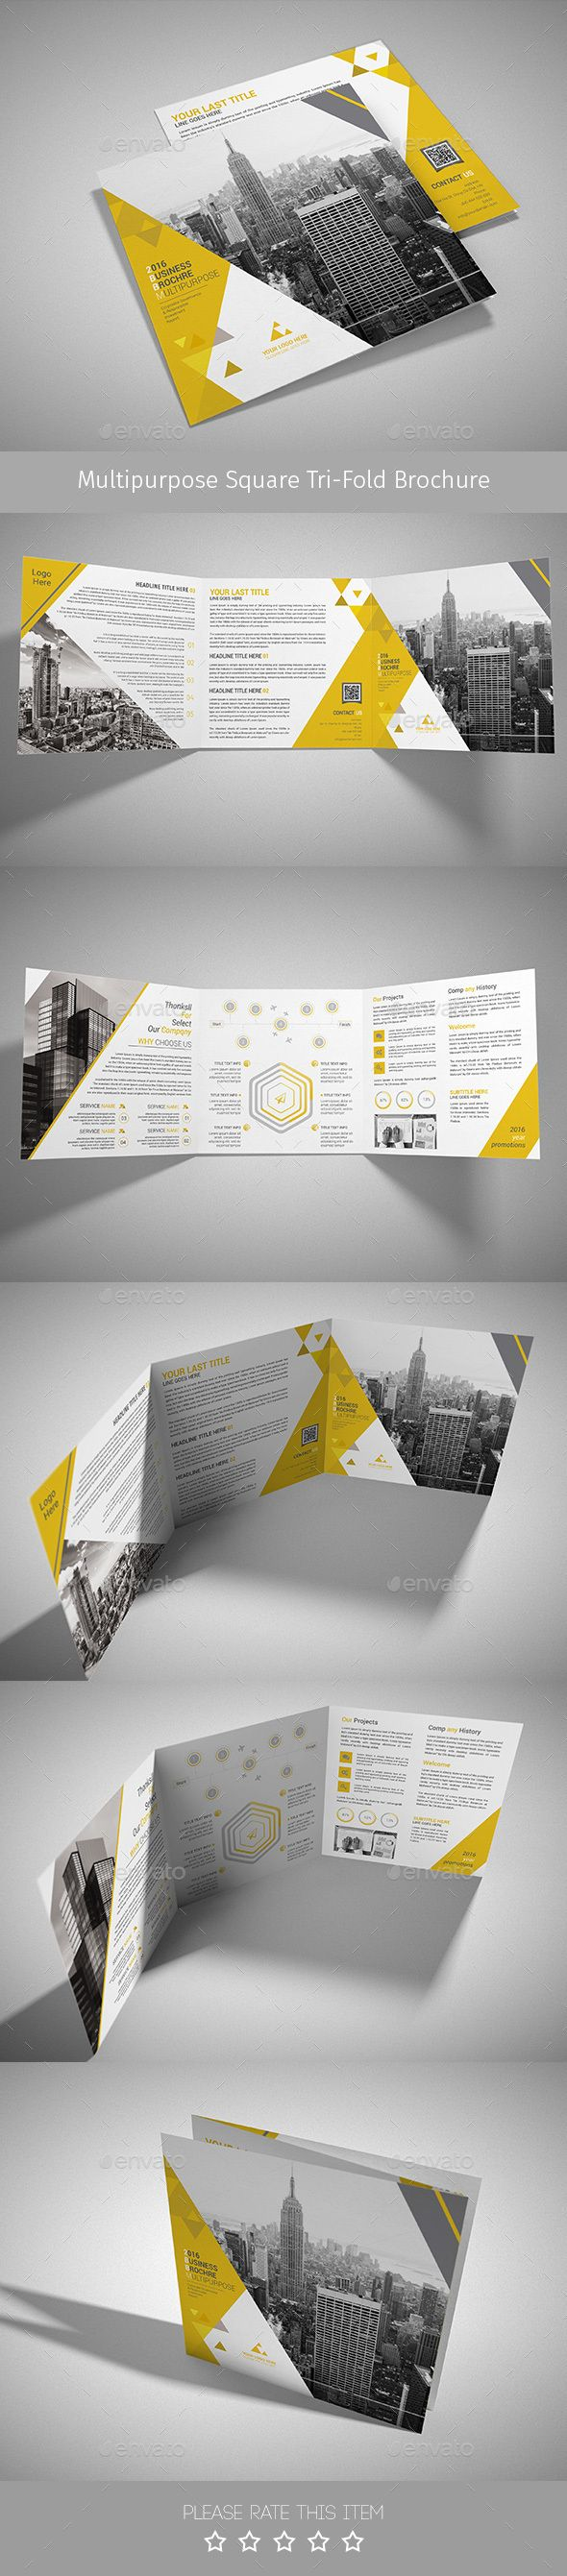 Corporate Tri-fold Square Brochure Template PSD. Download here: http://graphicriver.net/item/corporate-trifold-square-brochure-09/15027465?ref=ksioks